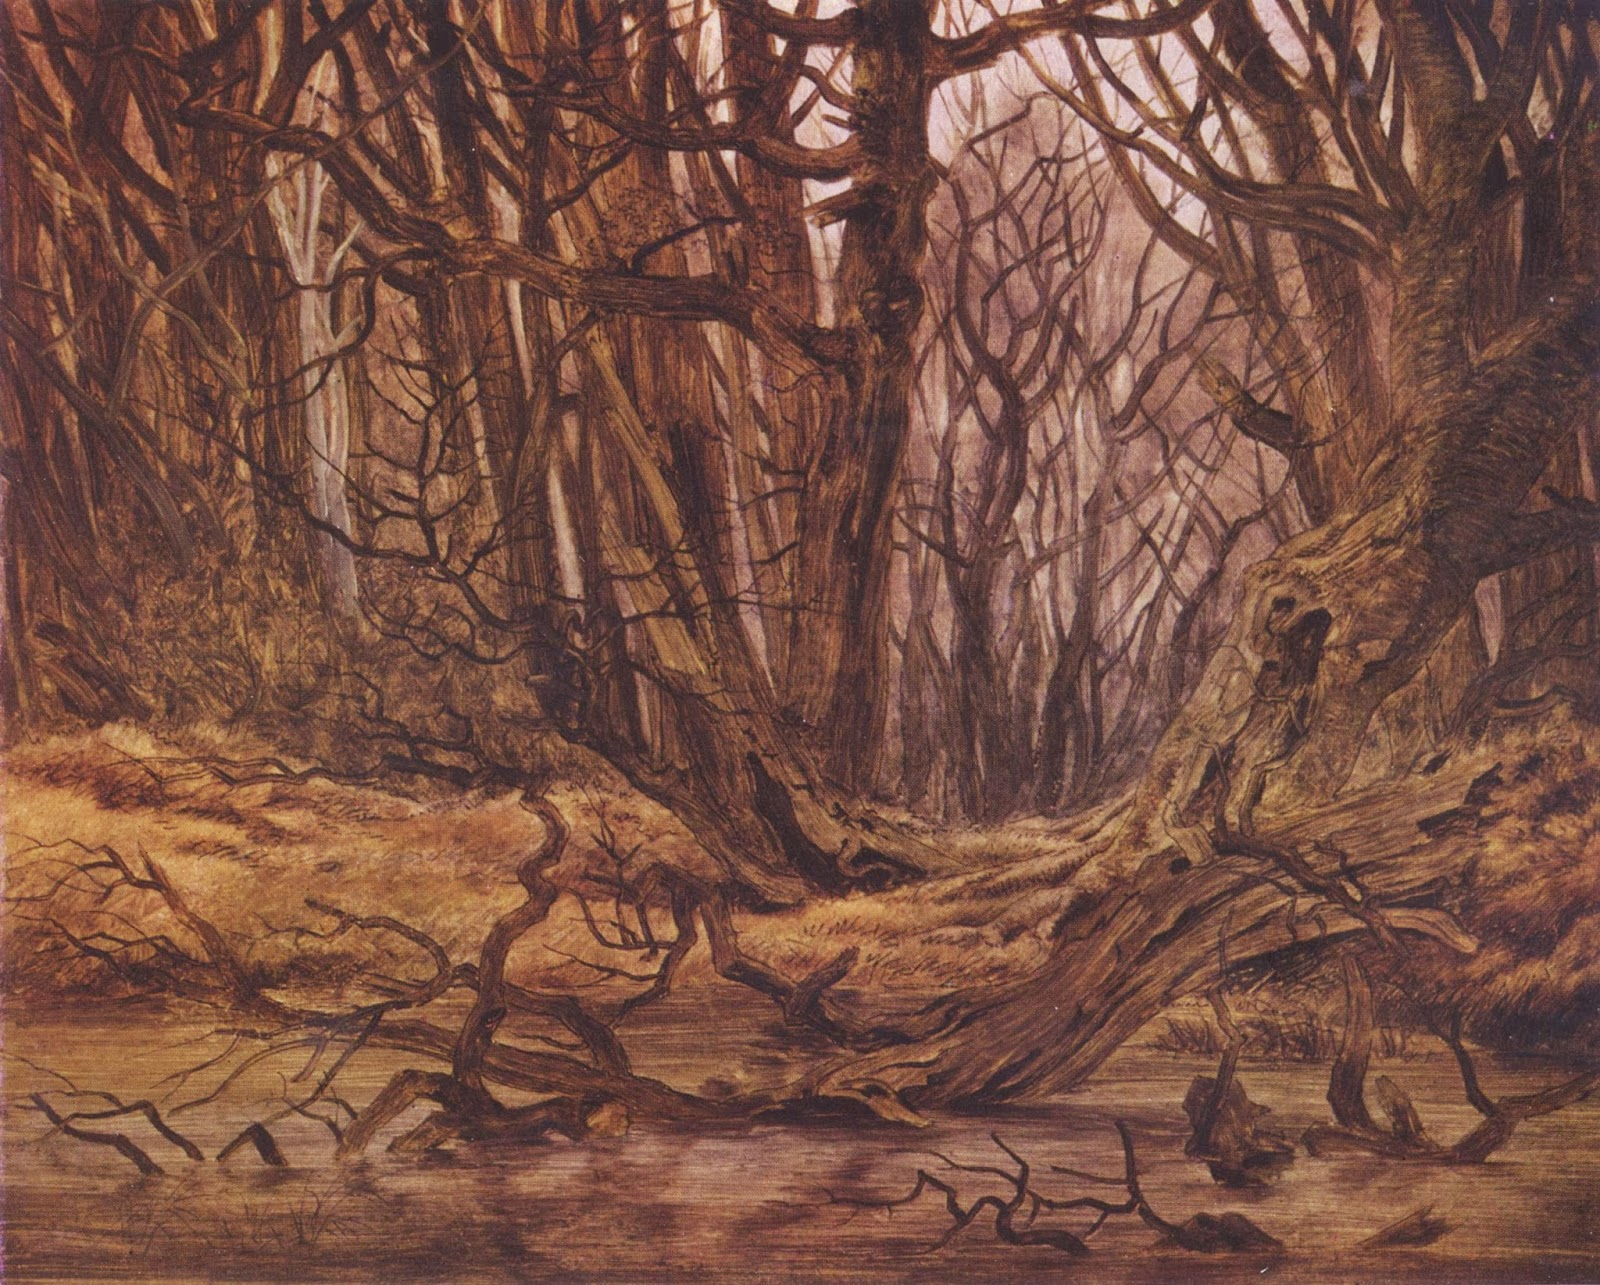 """Forrest in the late autumn"" Casper David Friedrich, autumn woods painting, creepy"